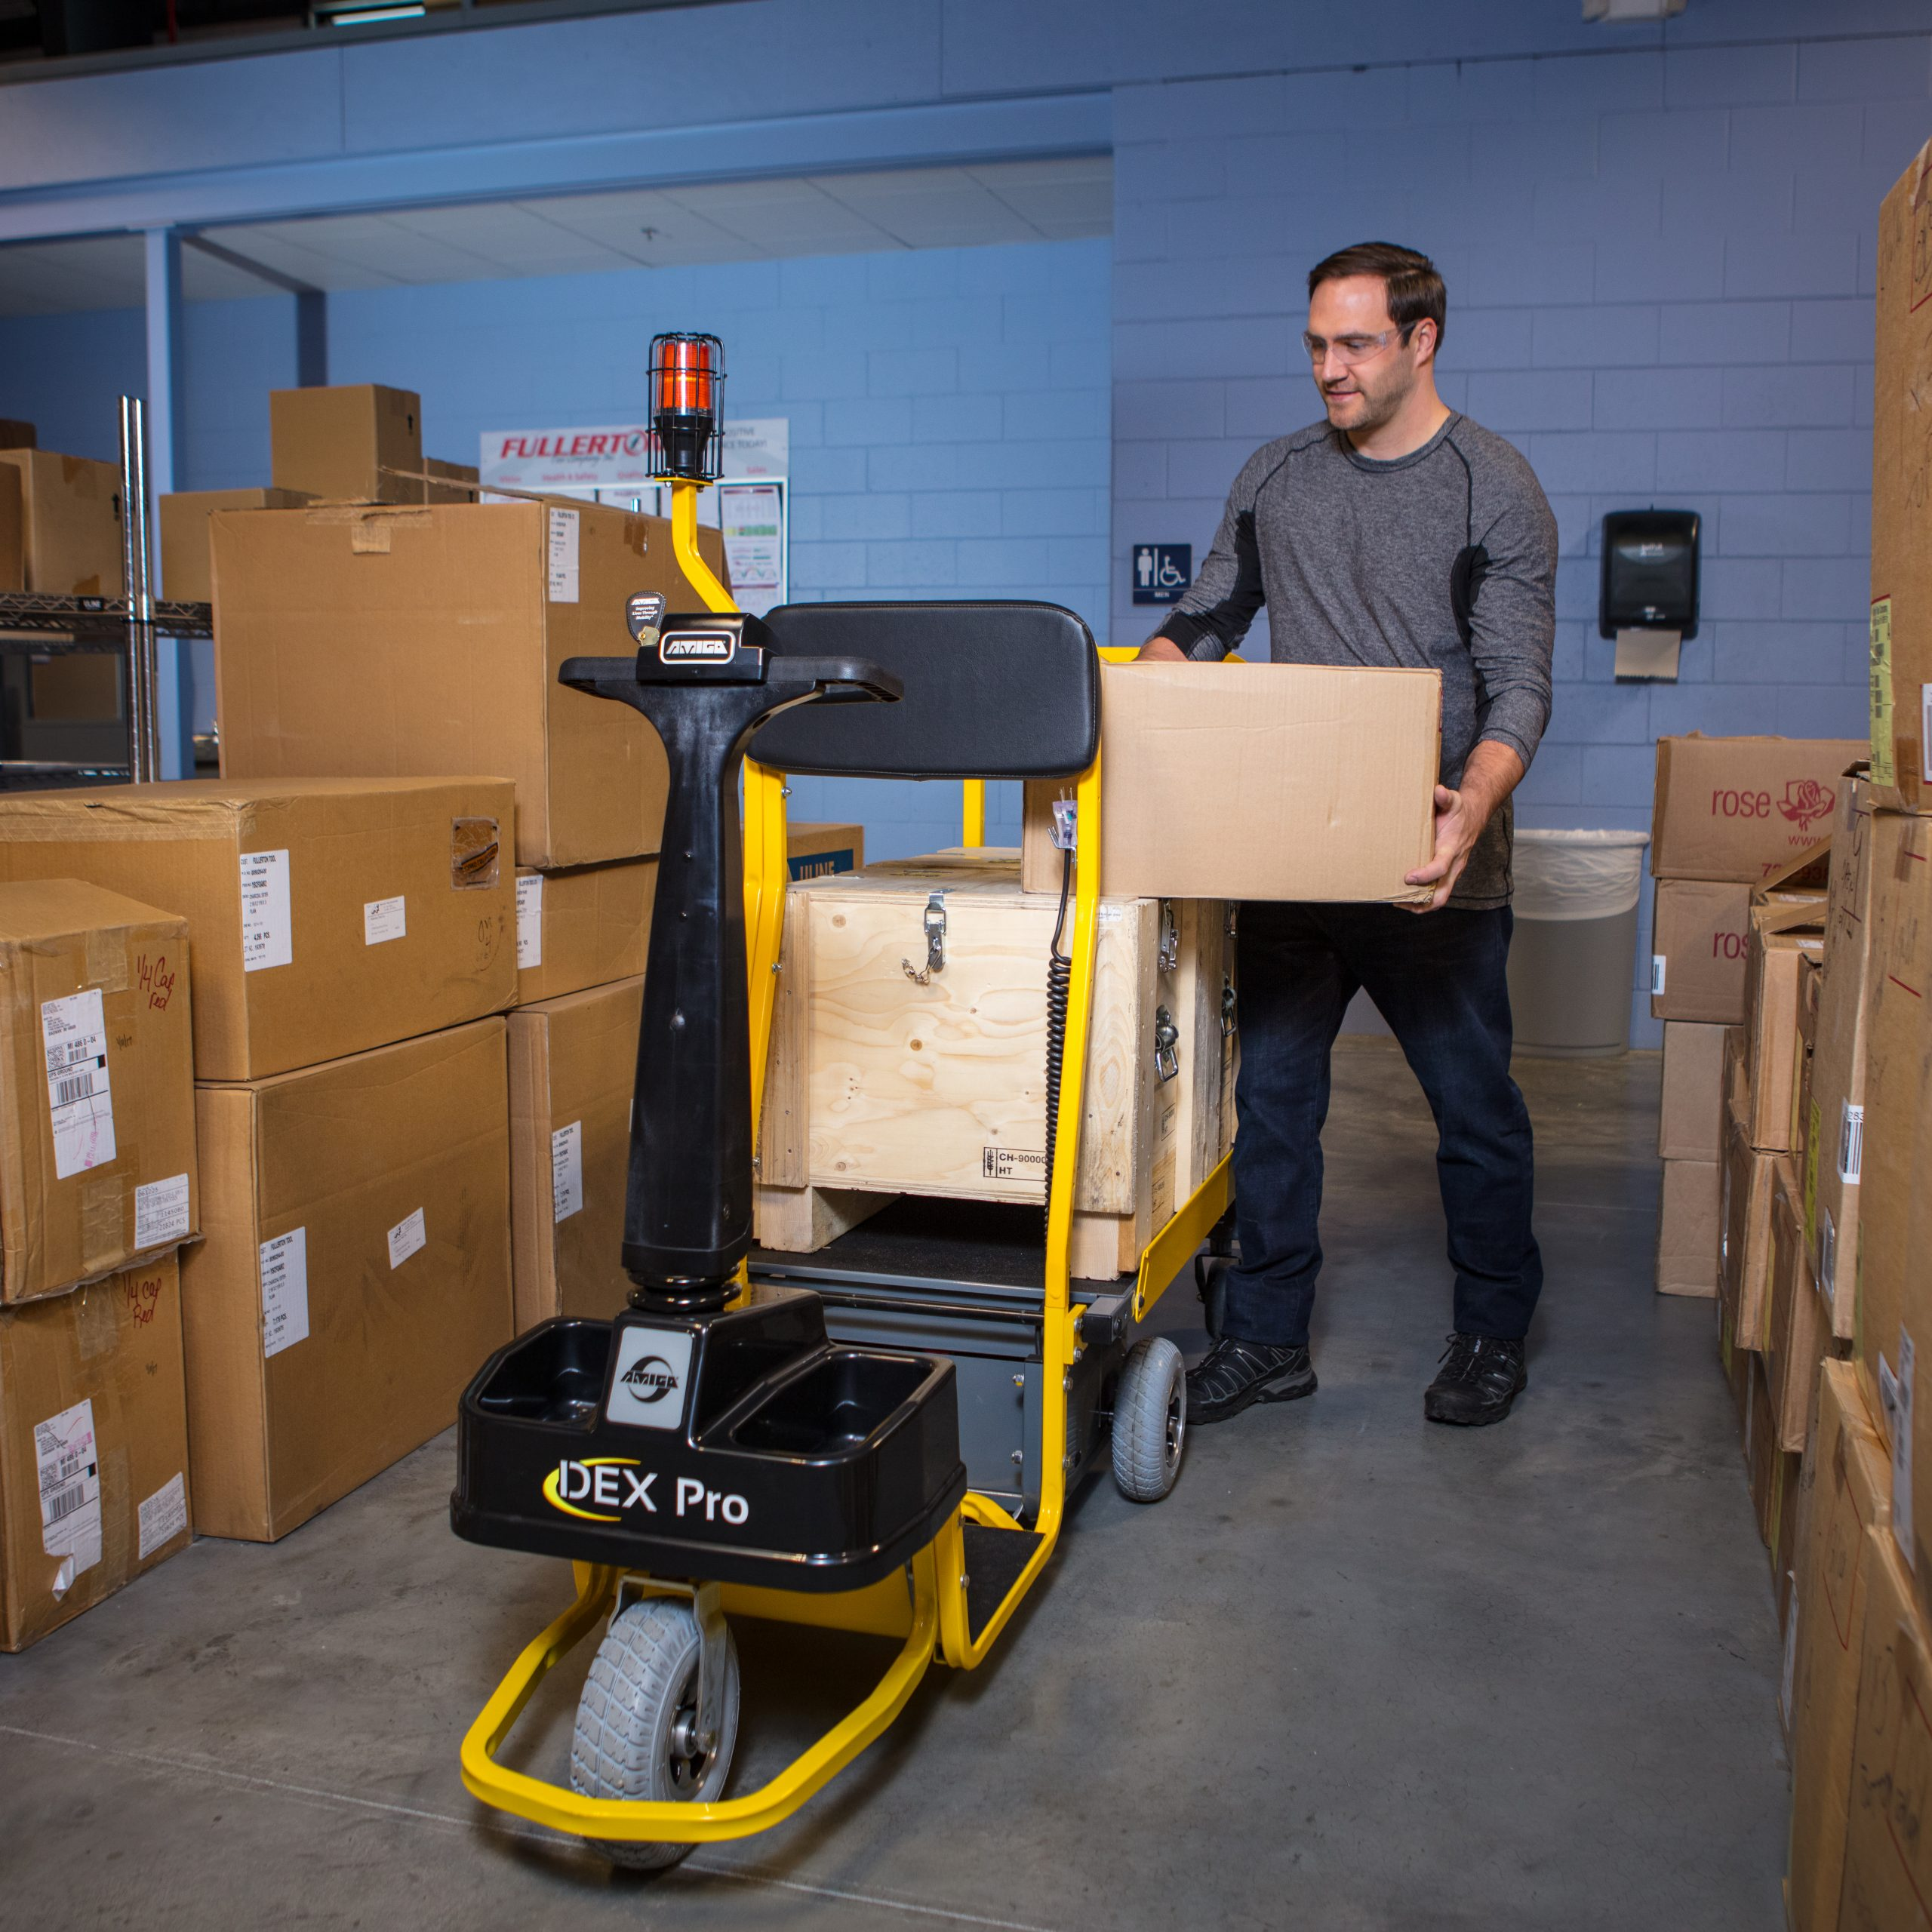 Rightsizing Equipment with Amigo Mobility's Dex Pro